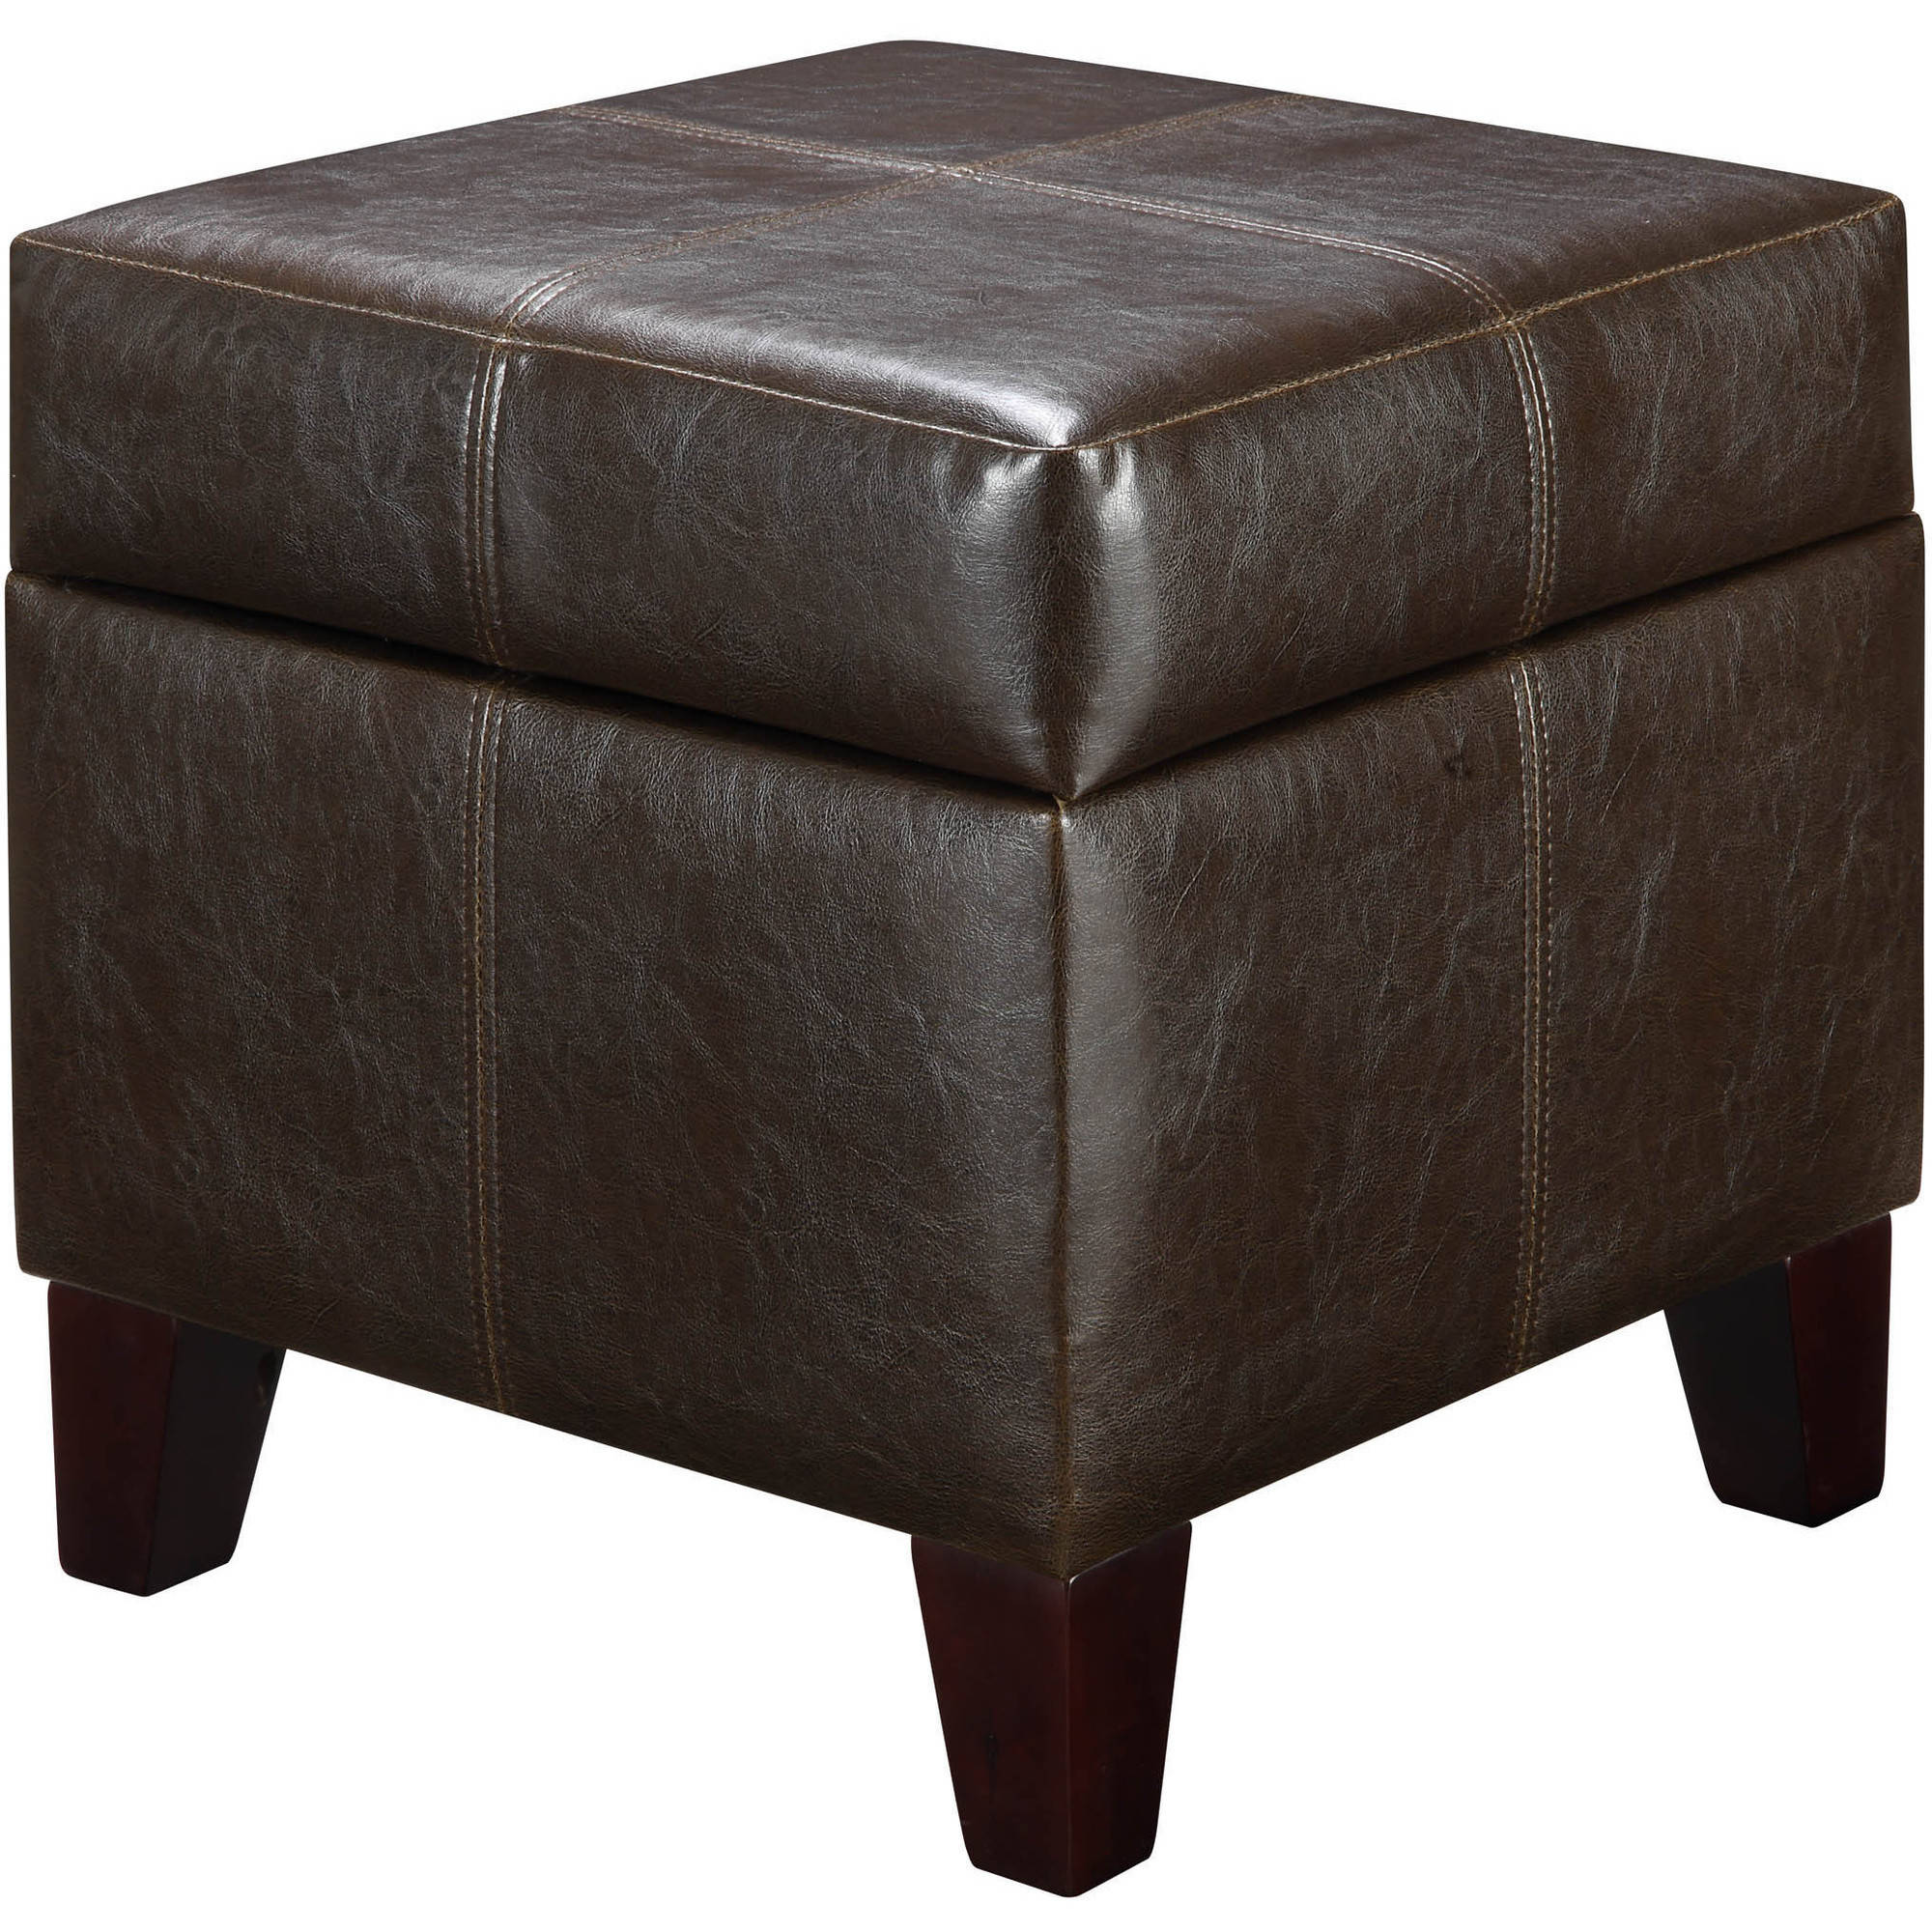 Dorel Living Small Storage Ottoman + Free $26 SYWR Points